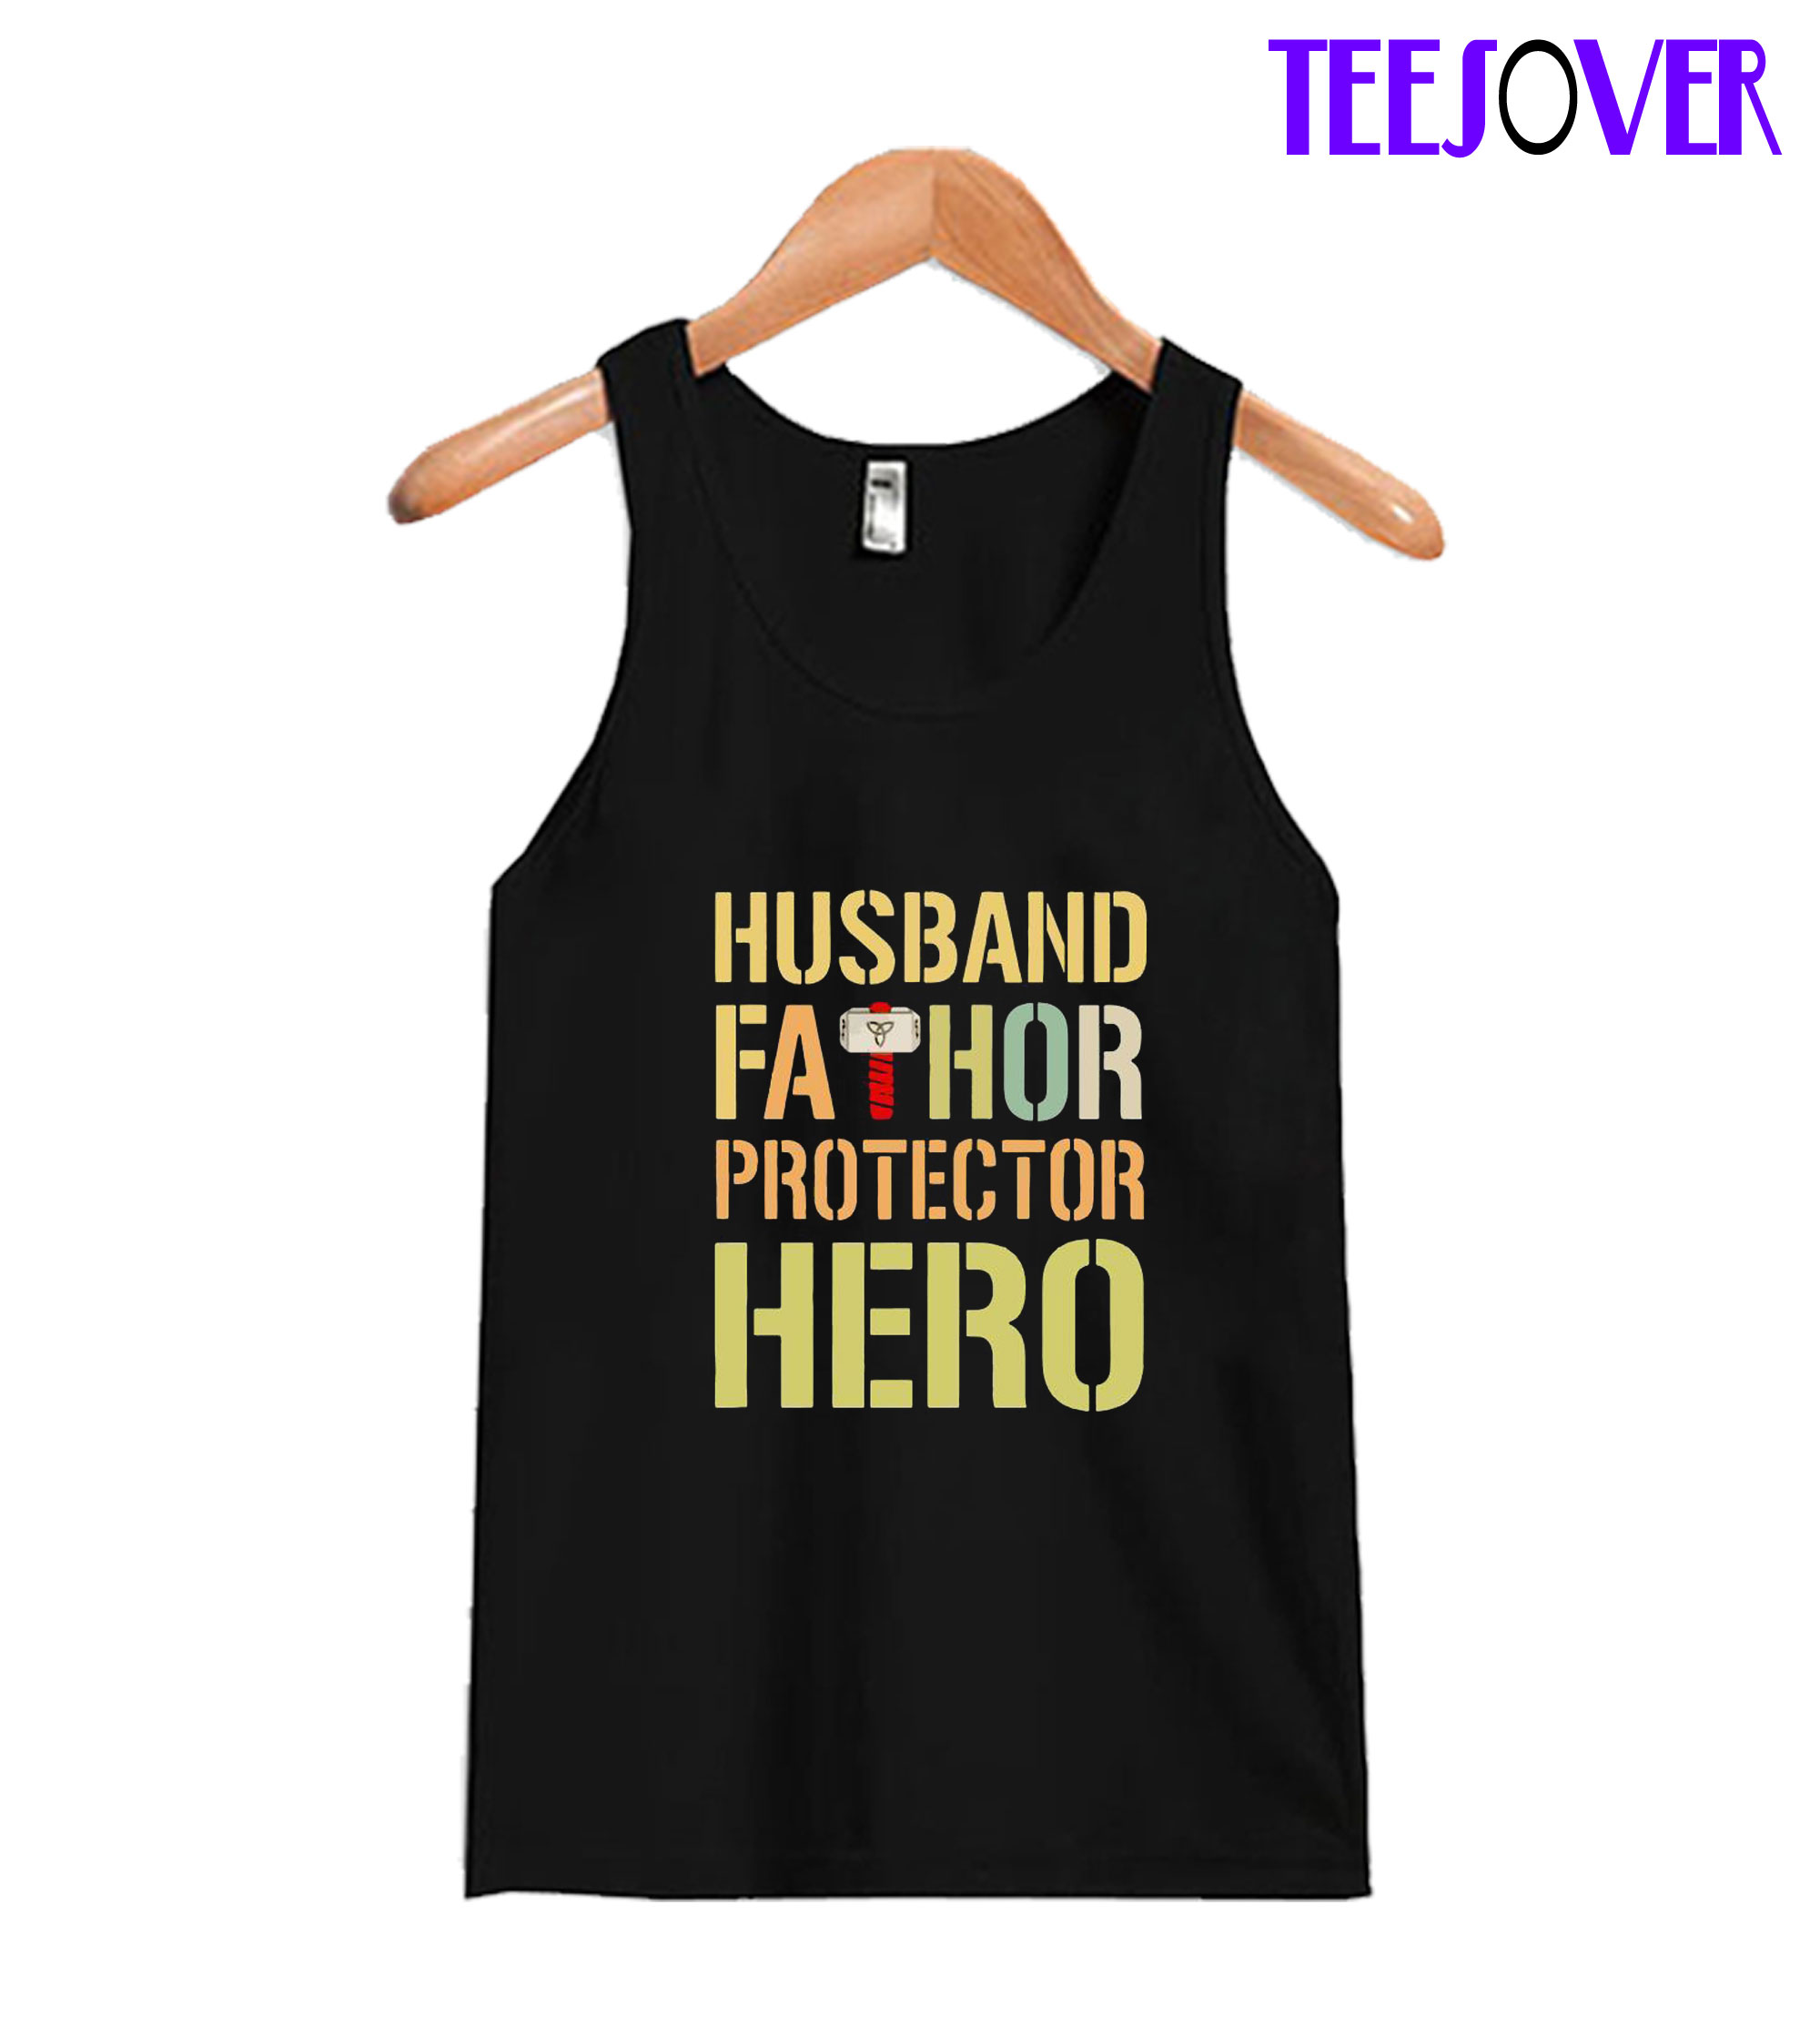 Husband fathor Protector Hero Tanktop